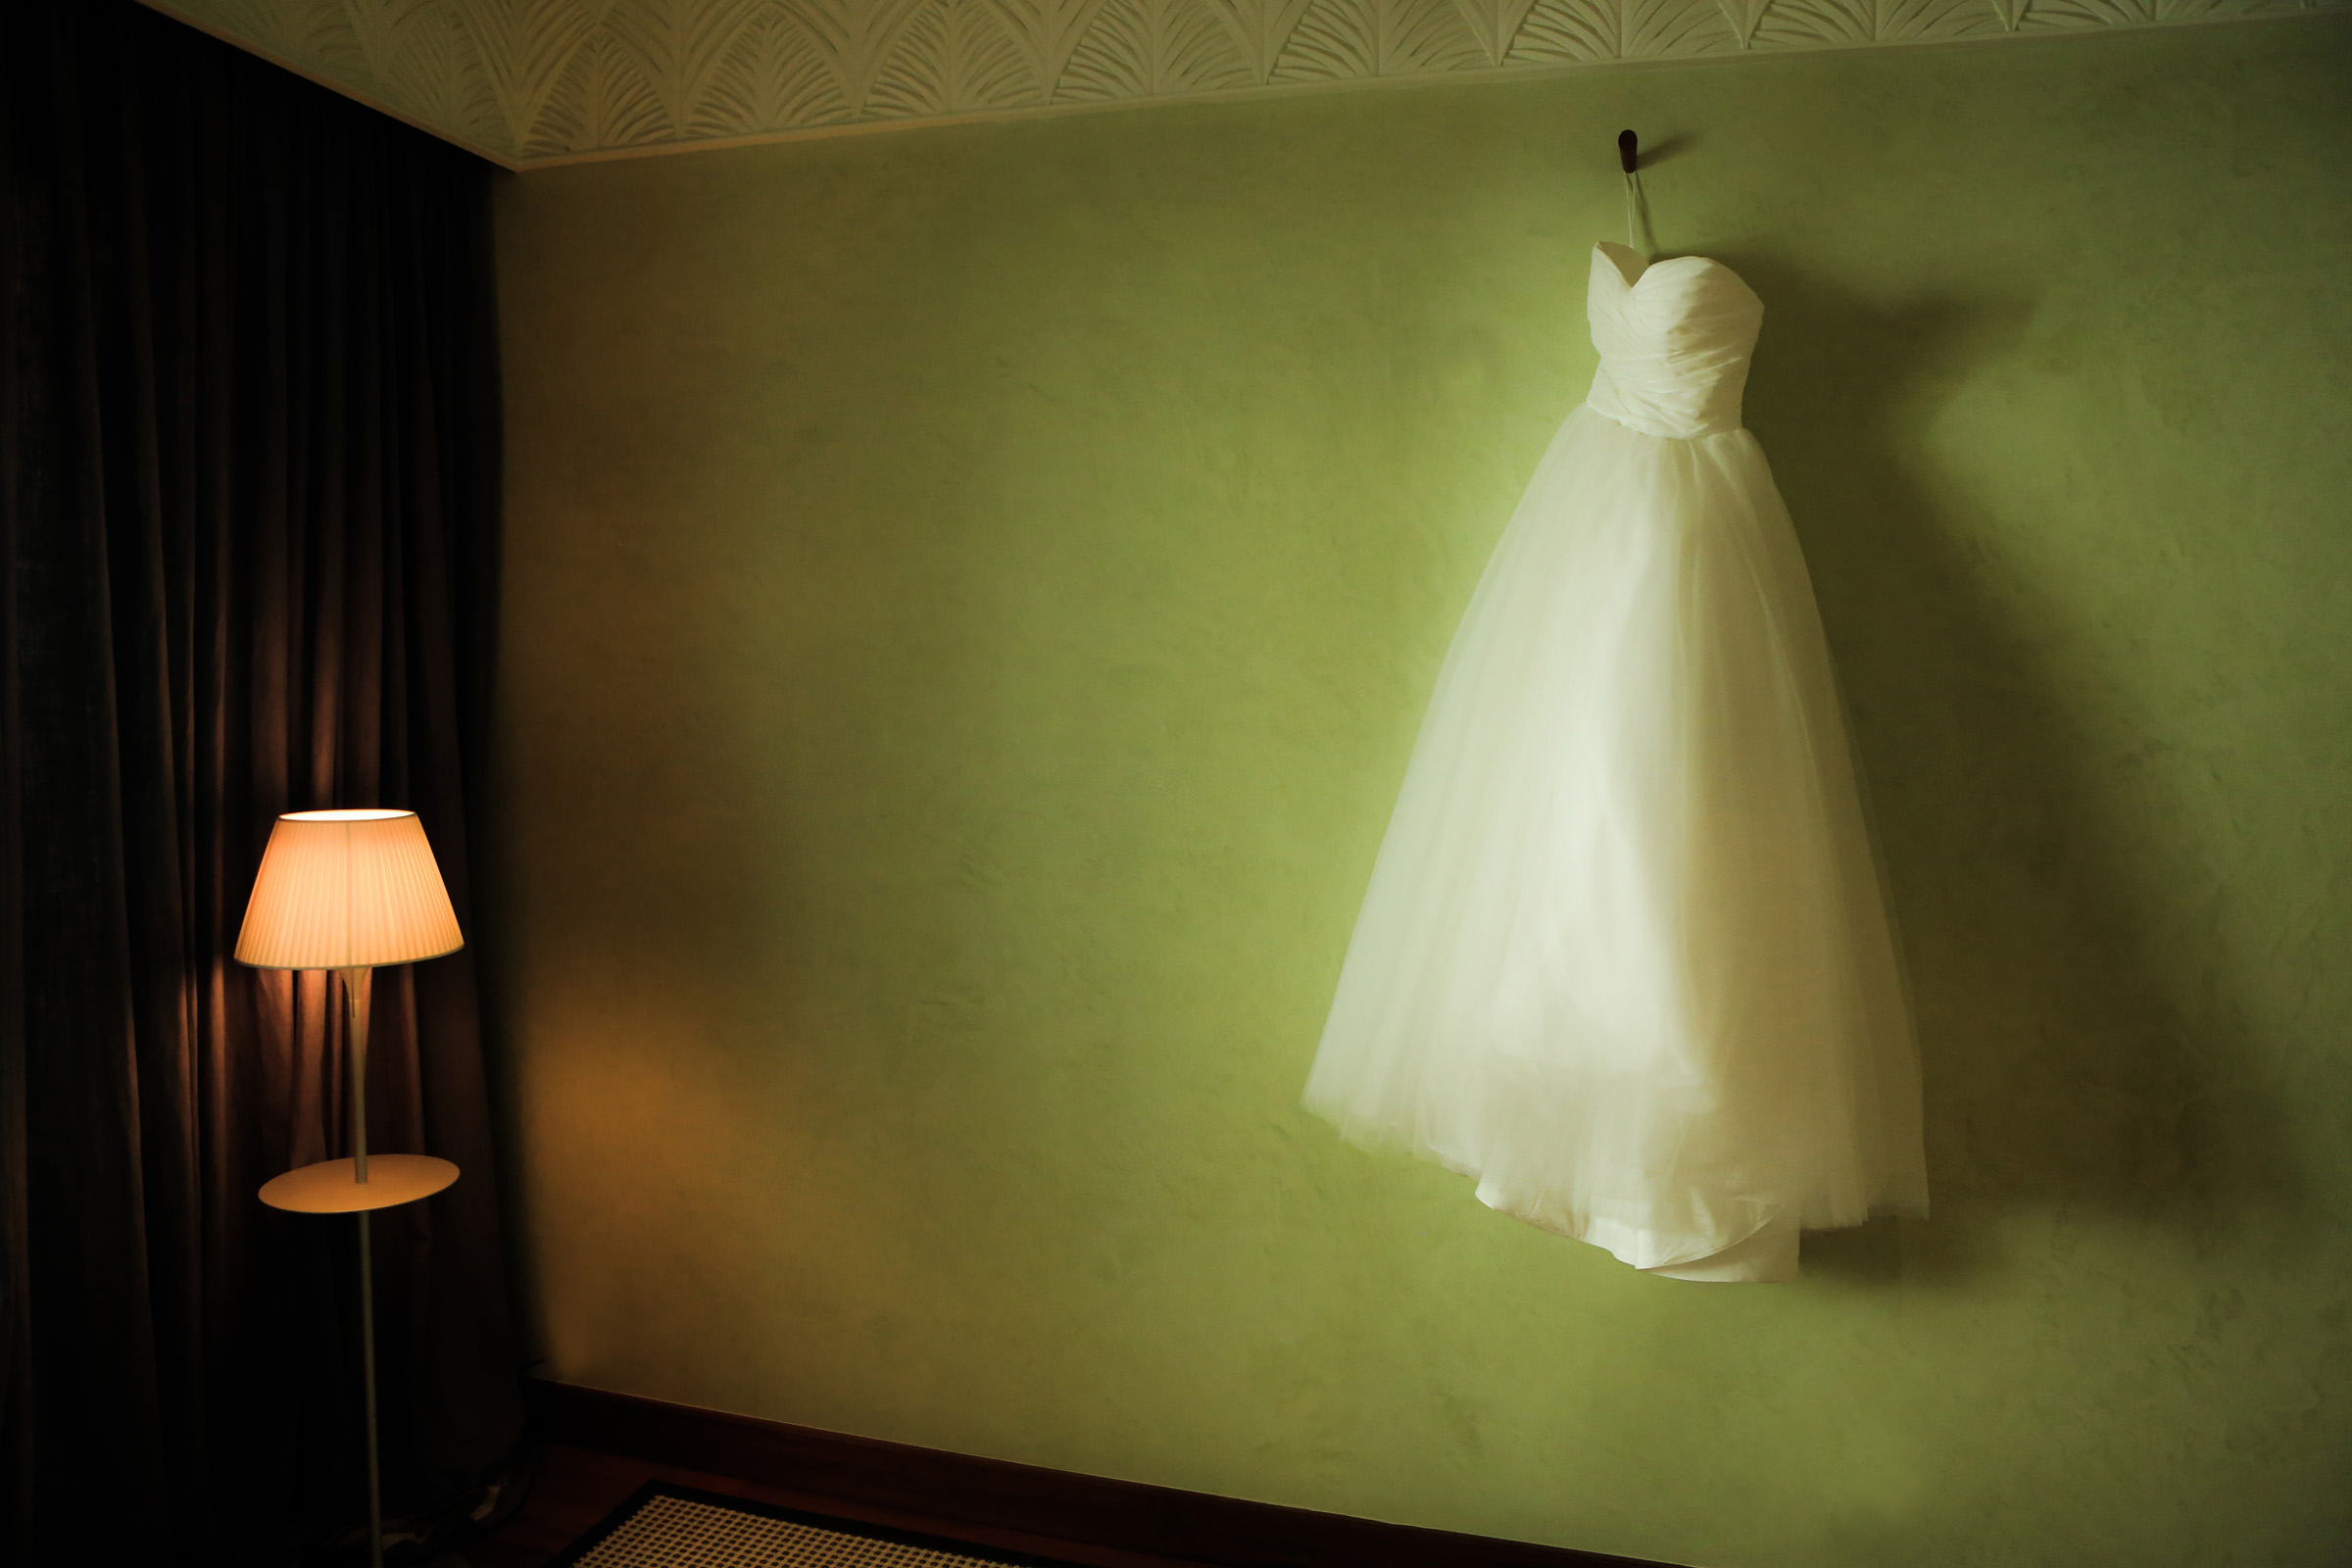 Moody portrait of a wedding gown, by Franck Boutonnet